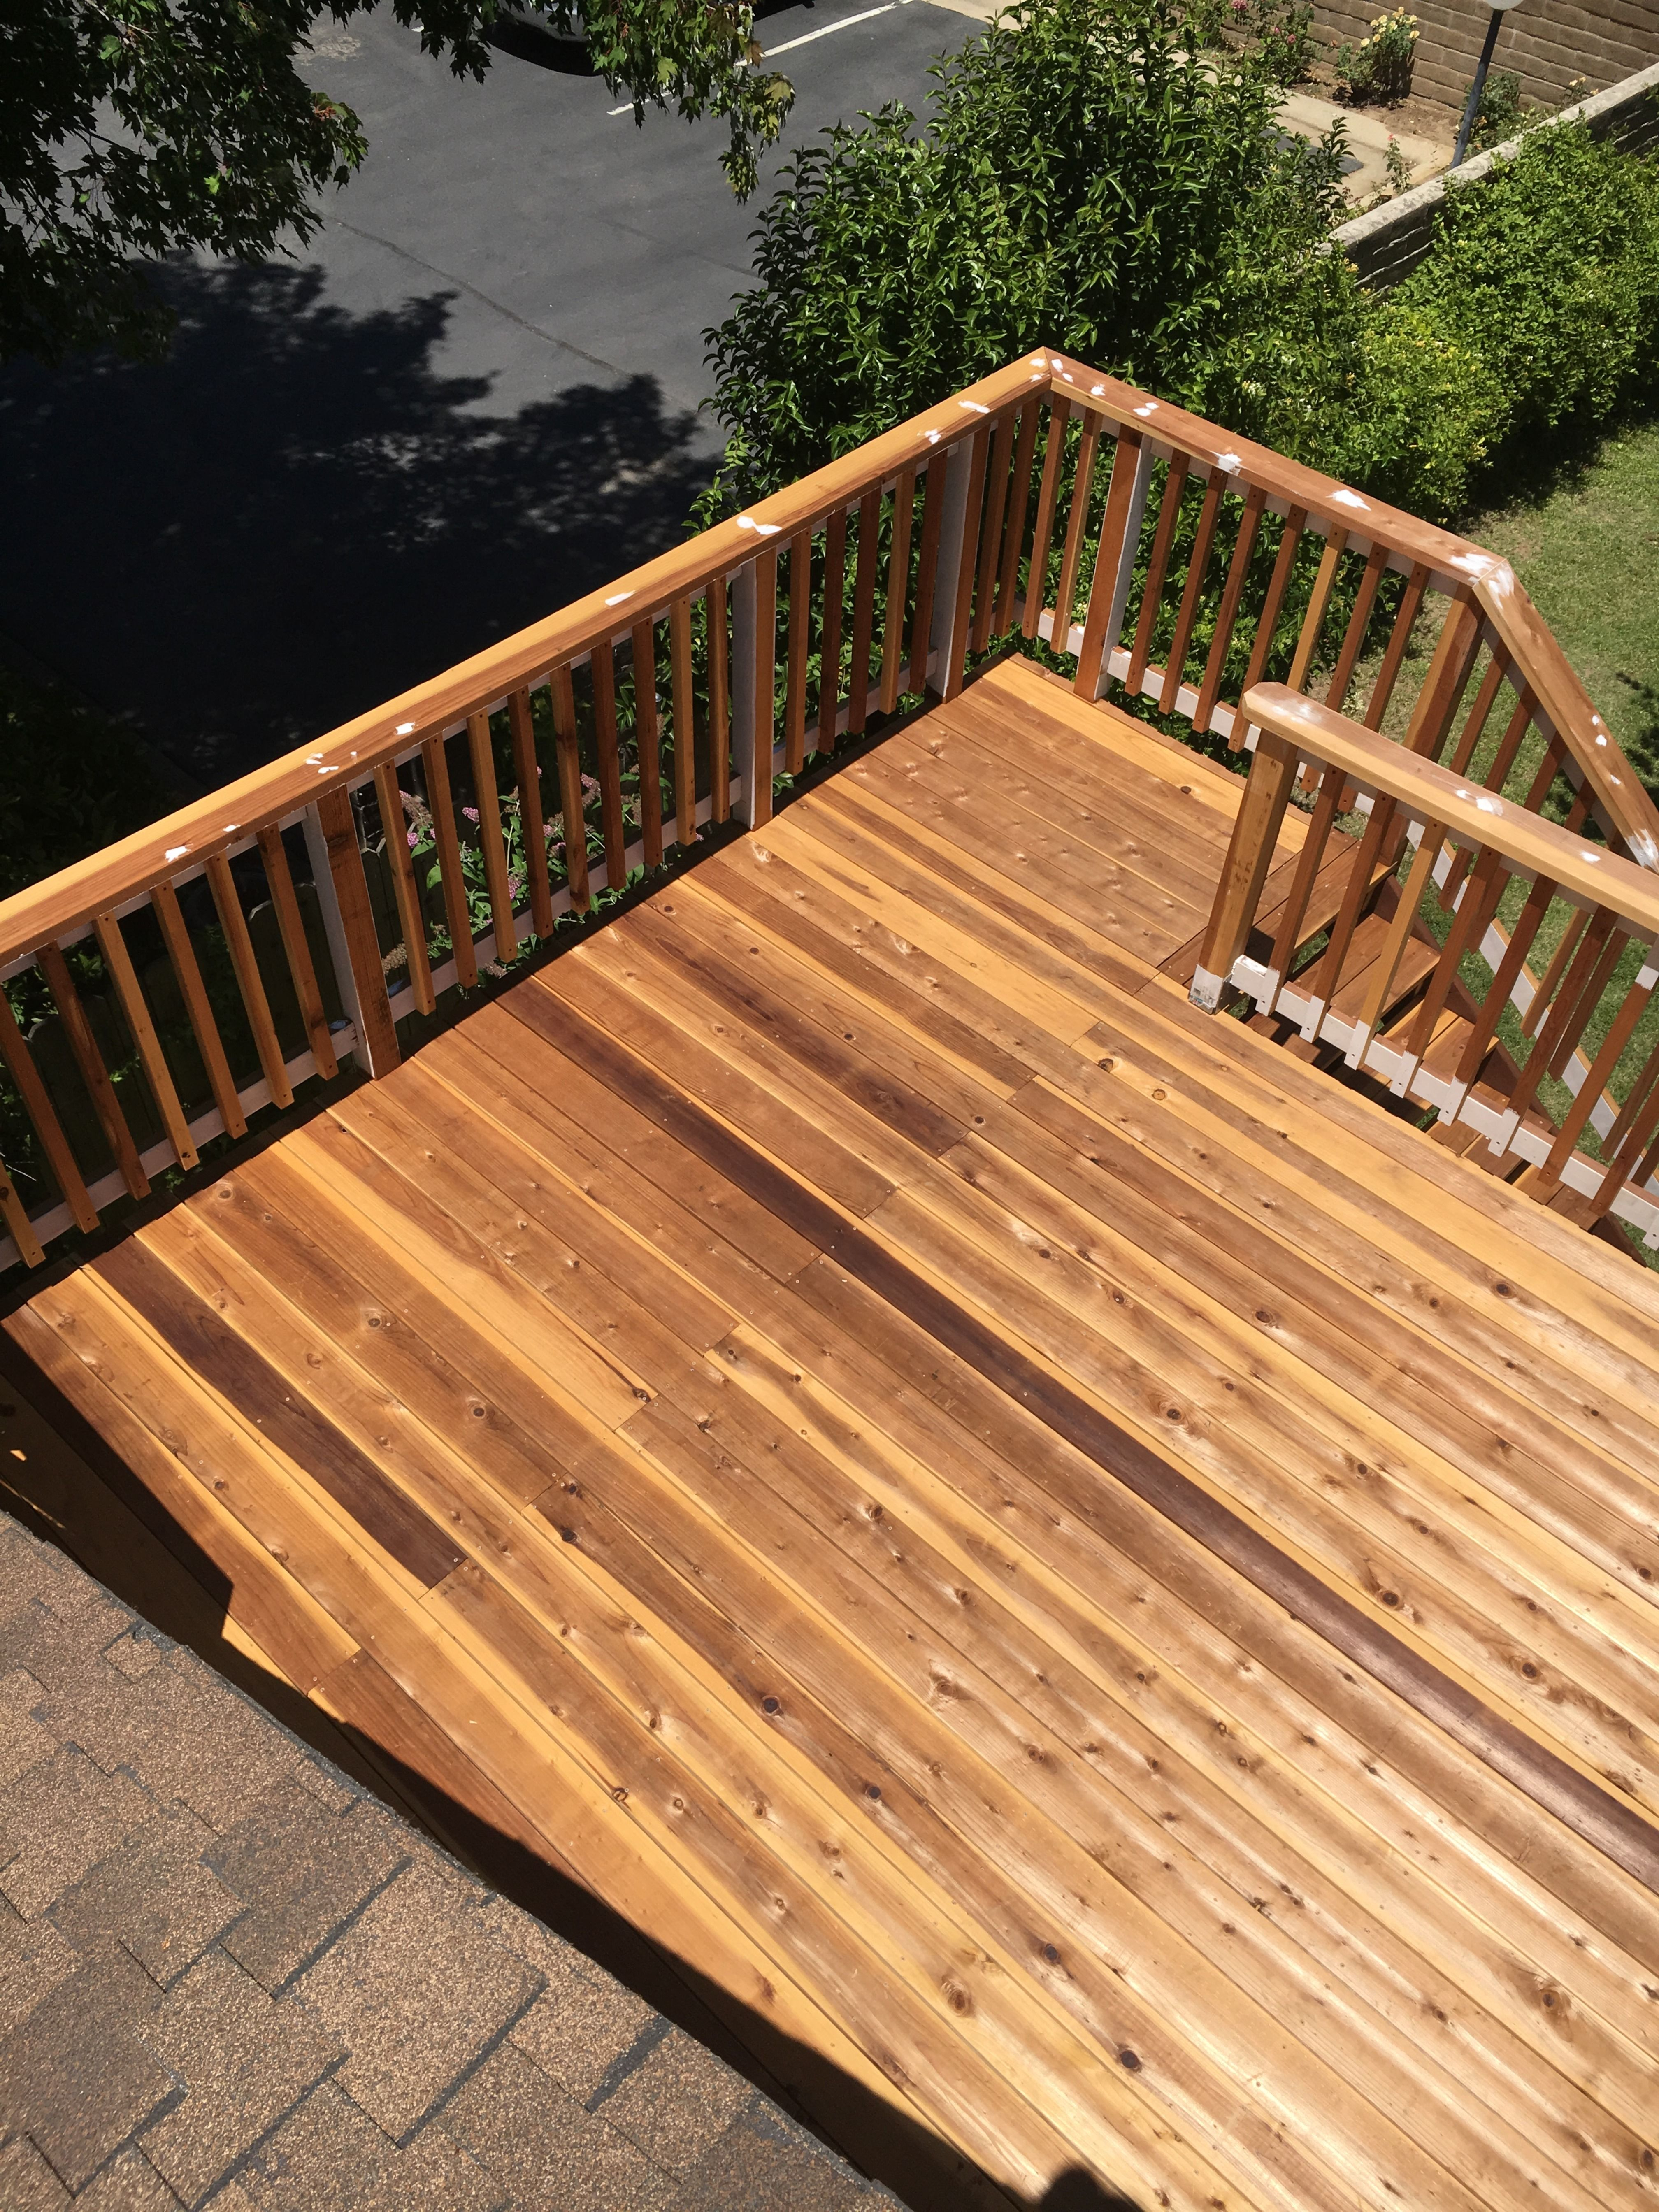 Deck Deck Railings Are Subject To The Same Challenging Weather Conditions That Affect The Decking Boards And They Deck Railings Railing Repair Exterior Wood